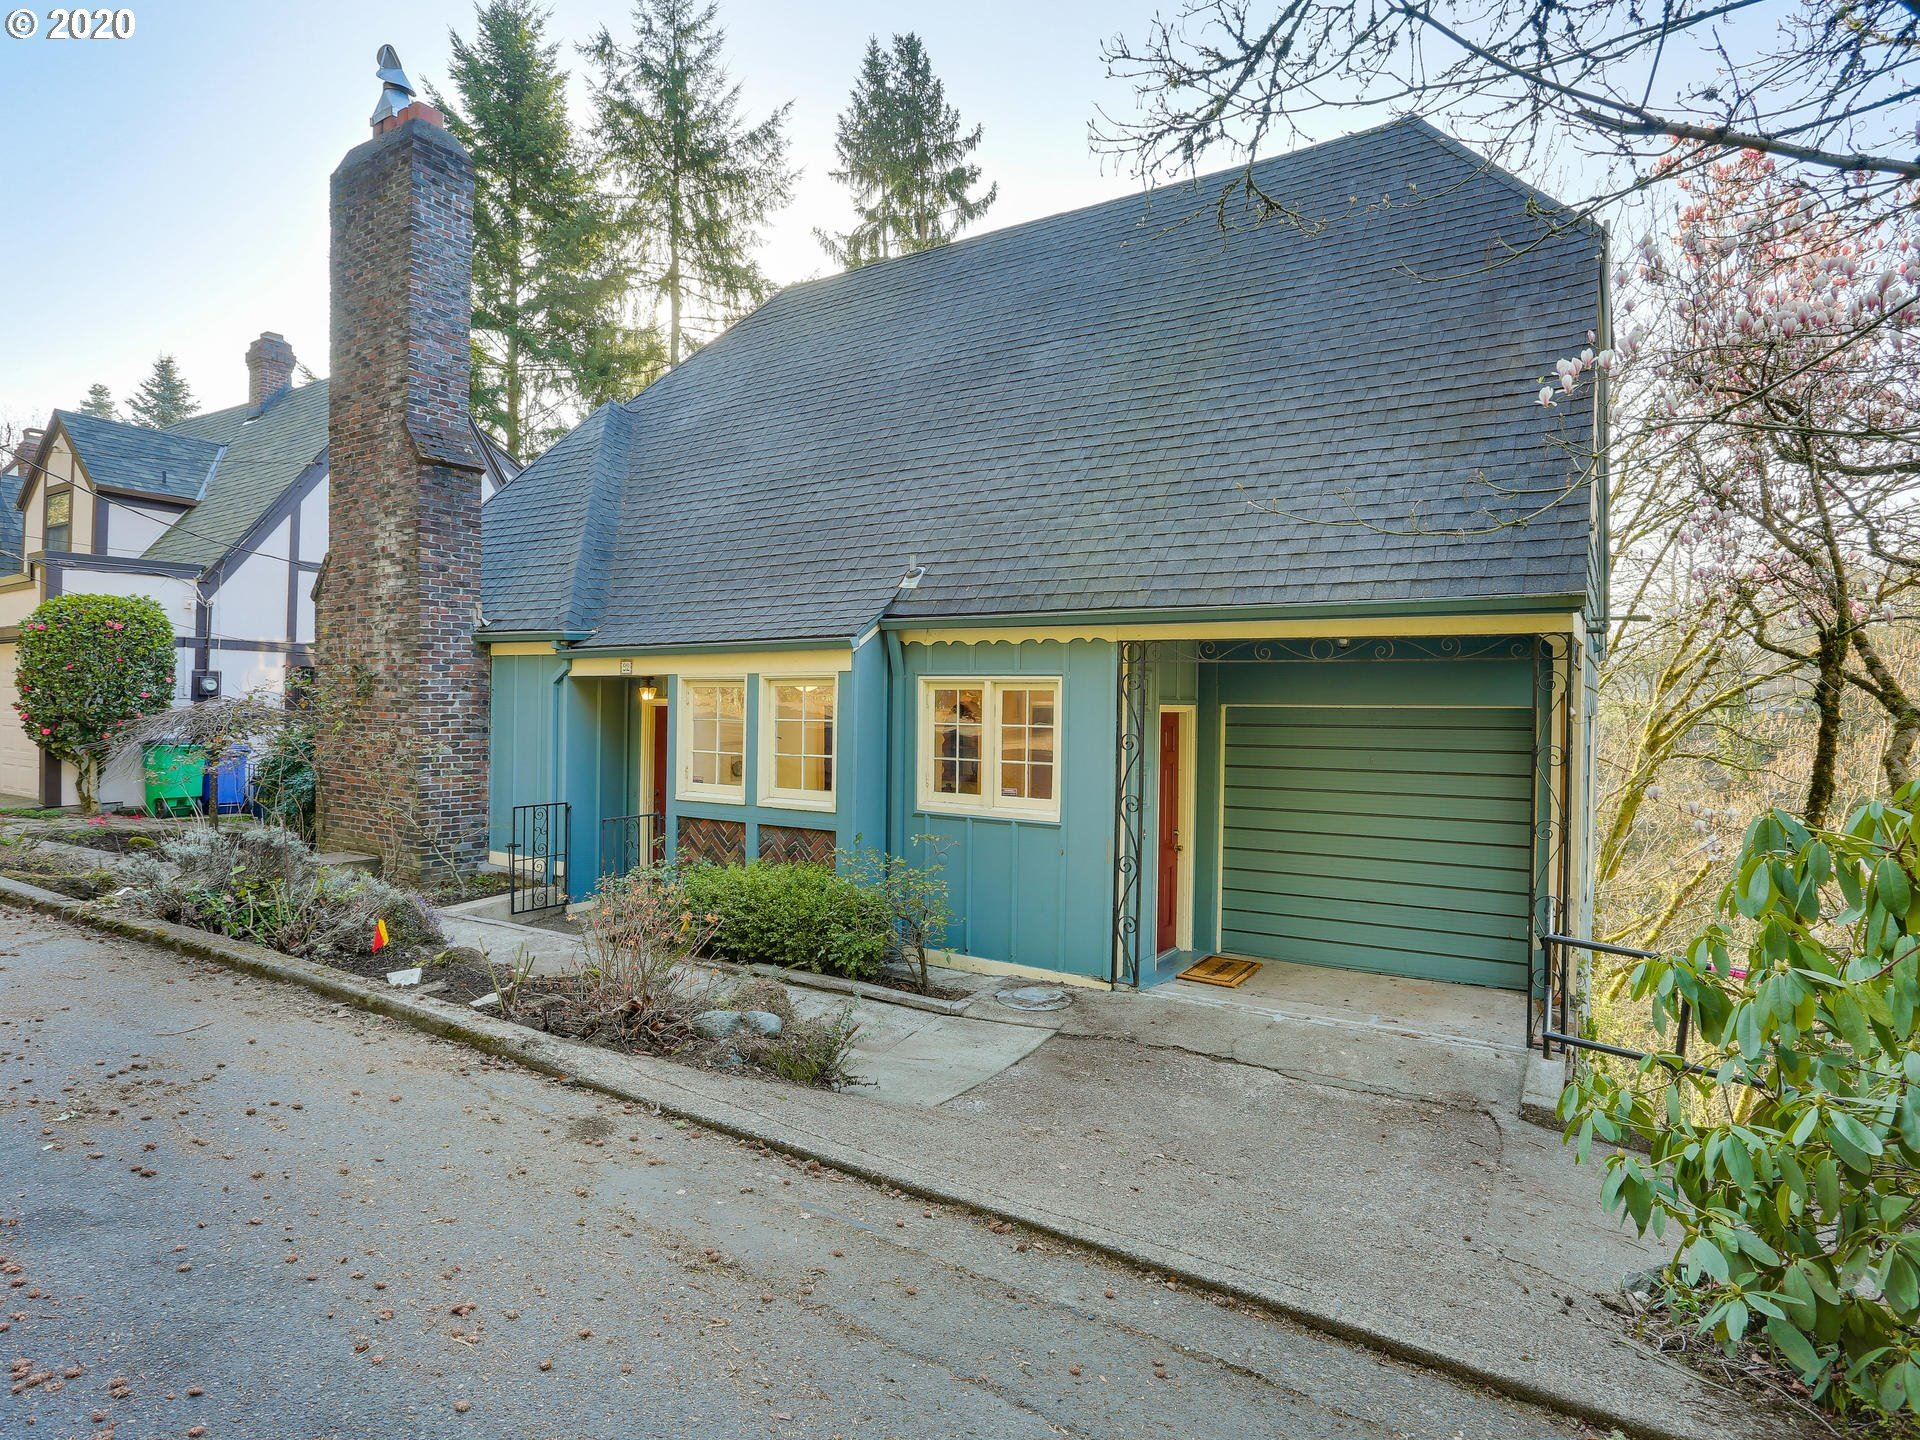 92 NW MACLEAY BLVD, Portland, OR 97210 - MLS#: 20137460